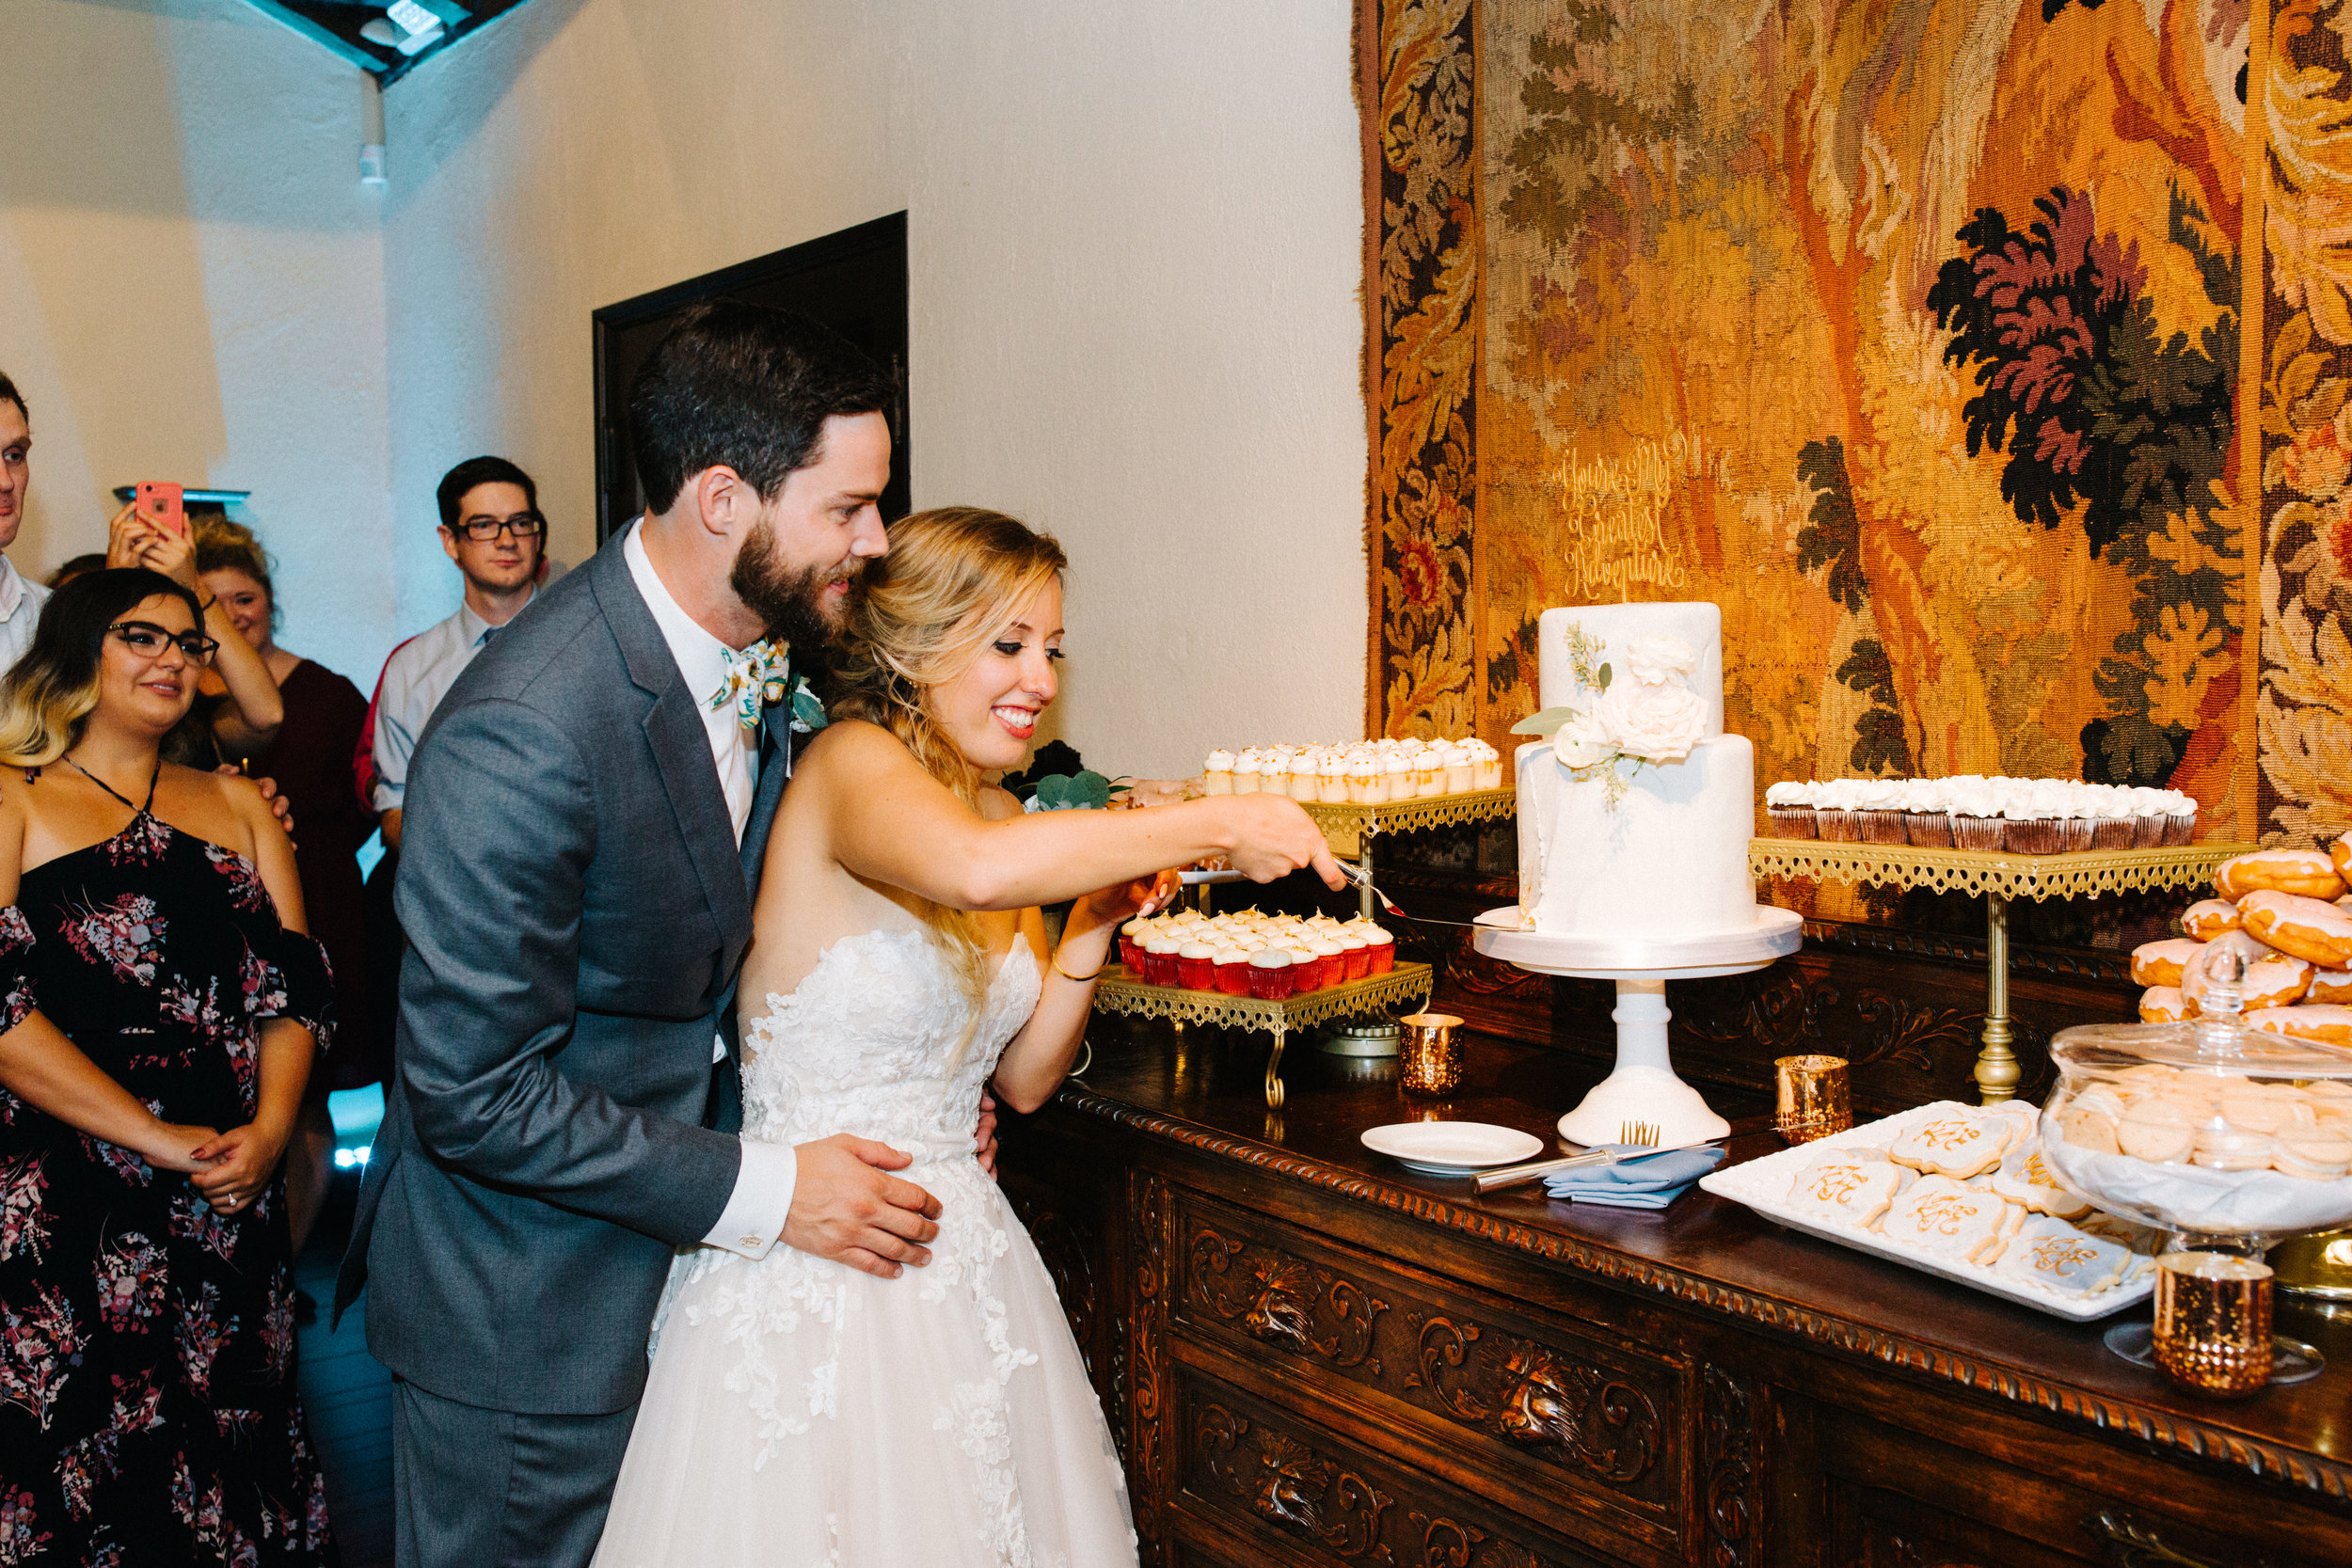 Orlando-Wedding-Photographer_Wedding-at-Casa-Feliz_Kaylin-and-Evan_Orlando-FL1230.jpg